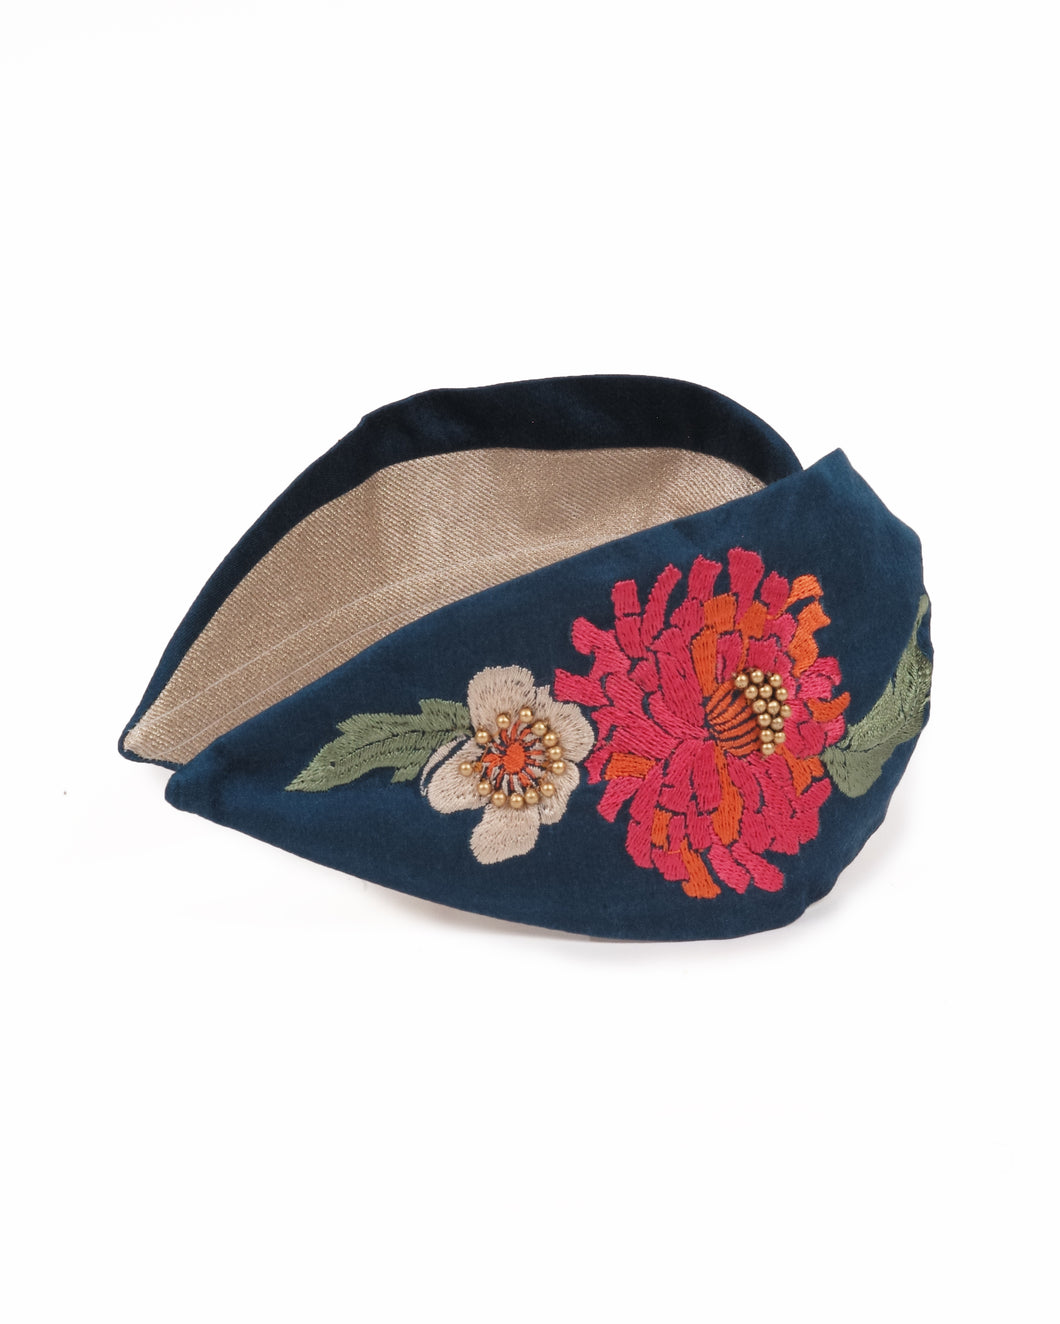 Retro Meadow Embroidered Headband - Teal